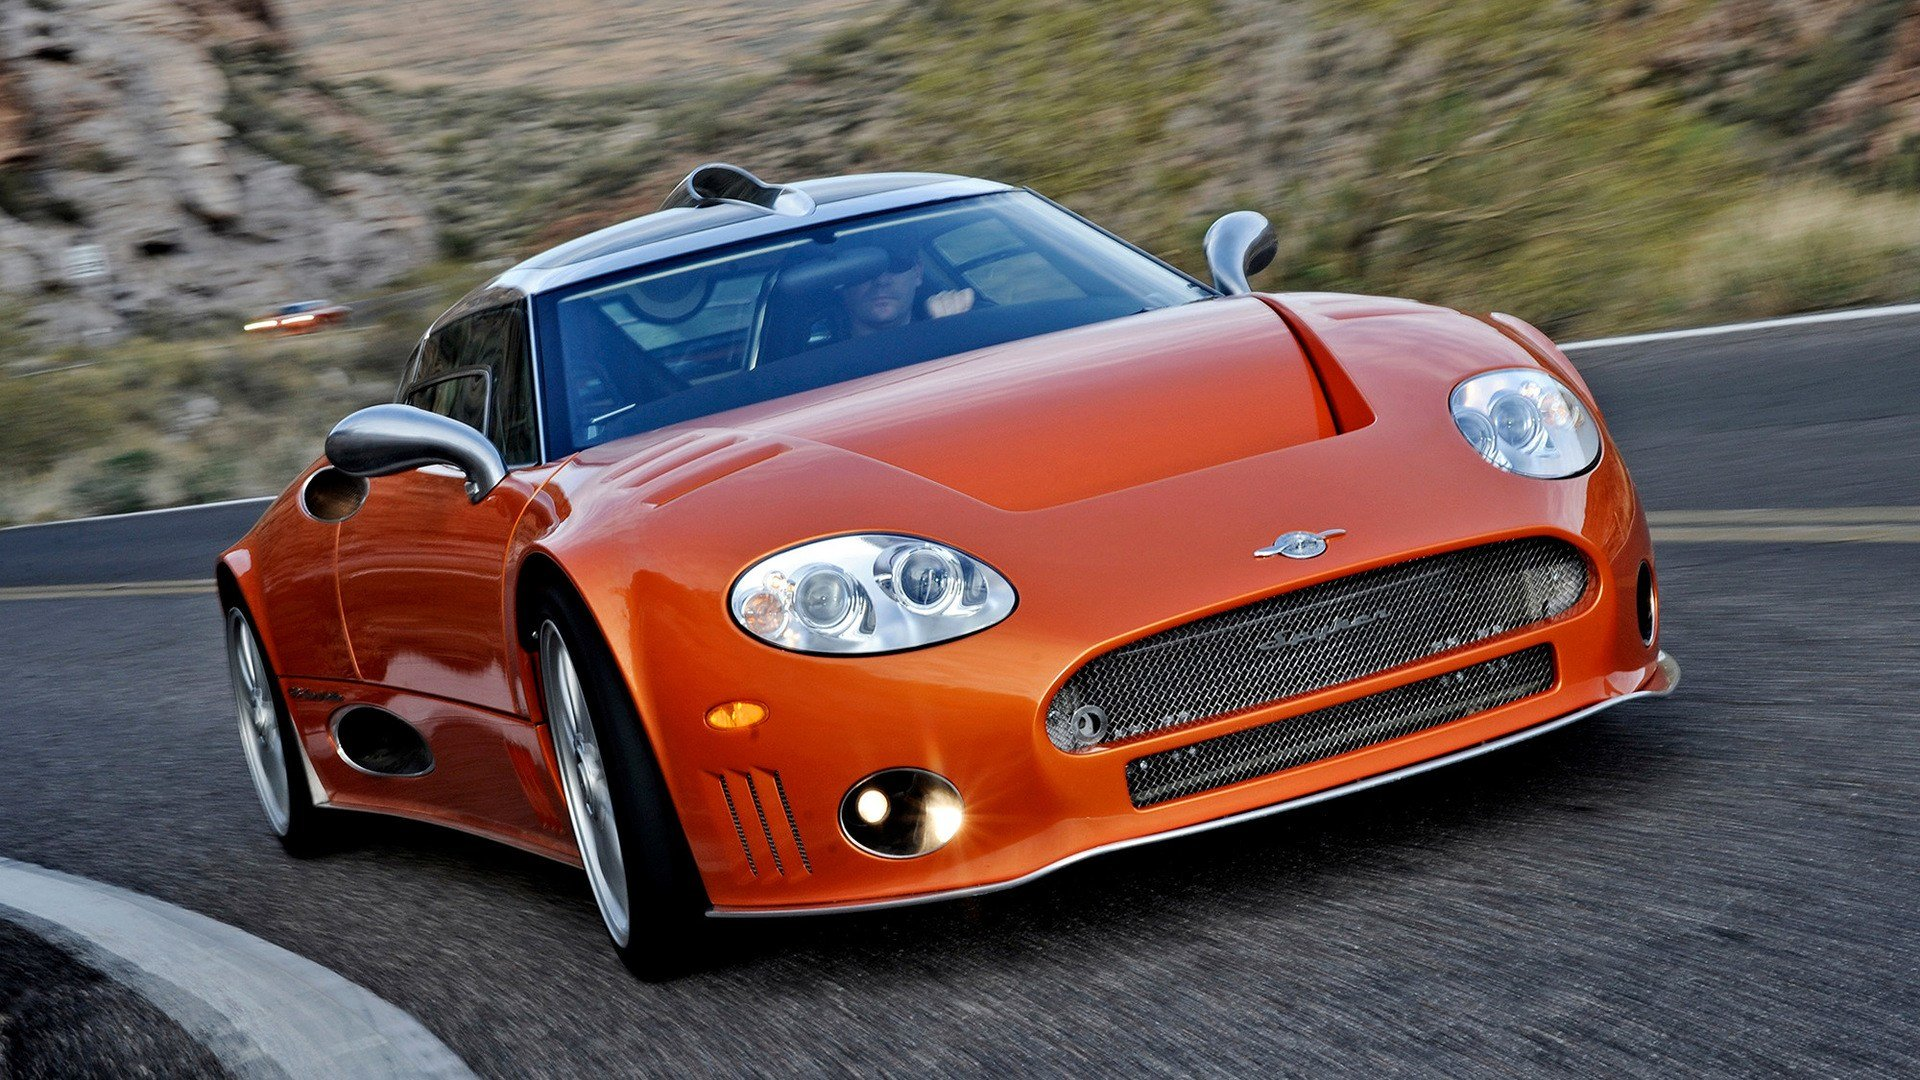 Latest Spyker C8 Laviolette 2013 Wallpapers And Hd Images Car Free Download